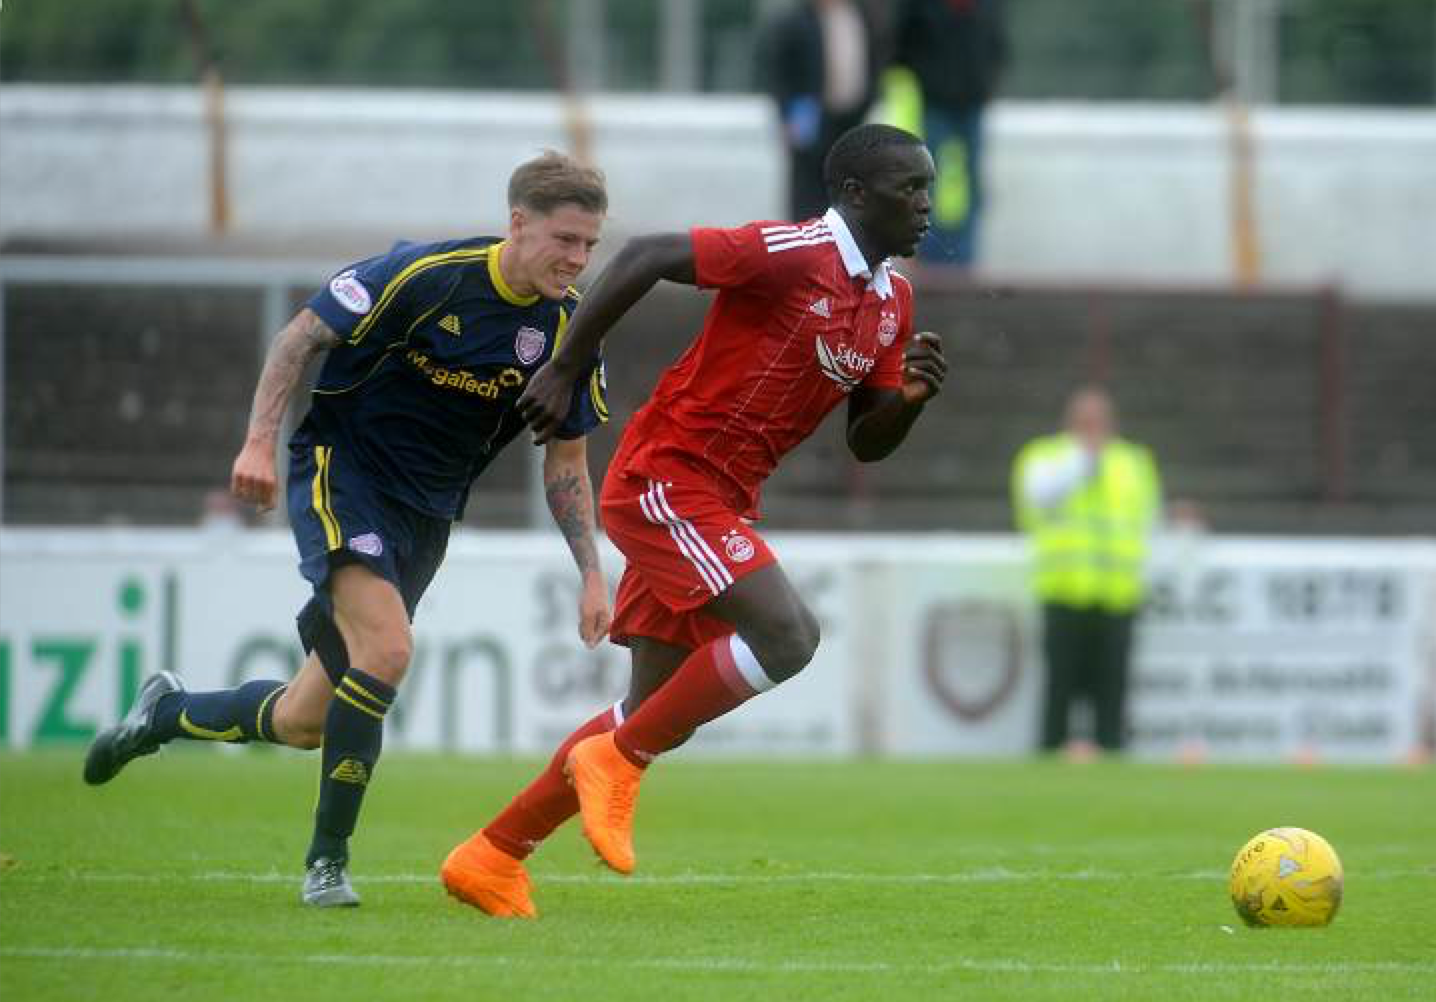 Khalid Aucho came on in the second half